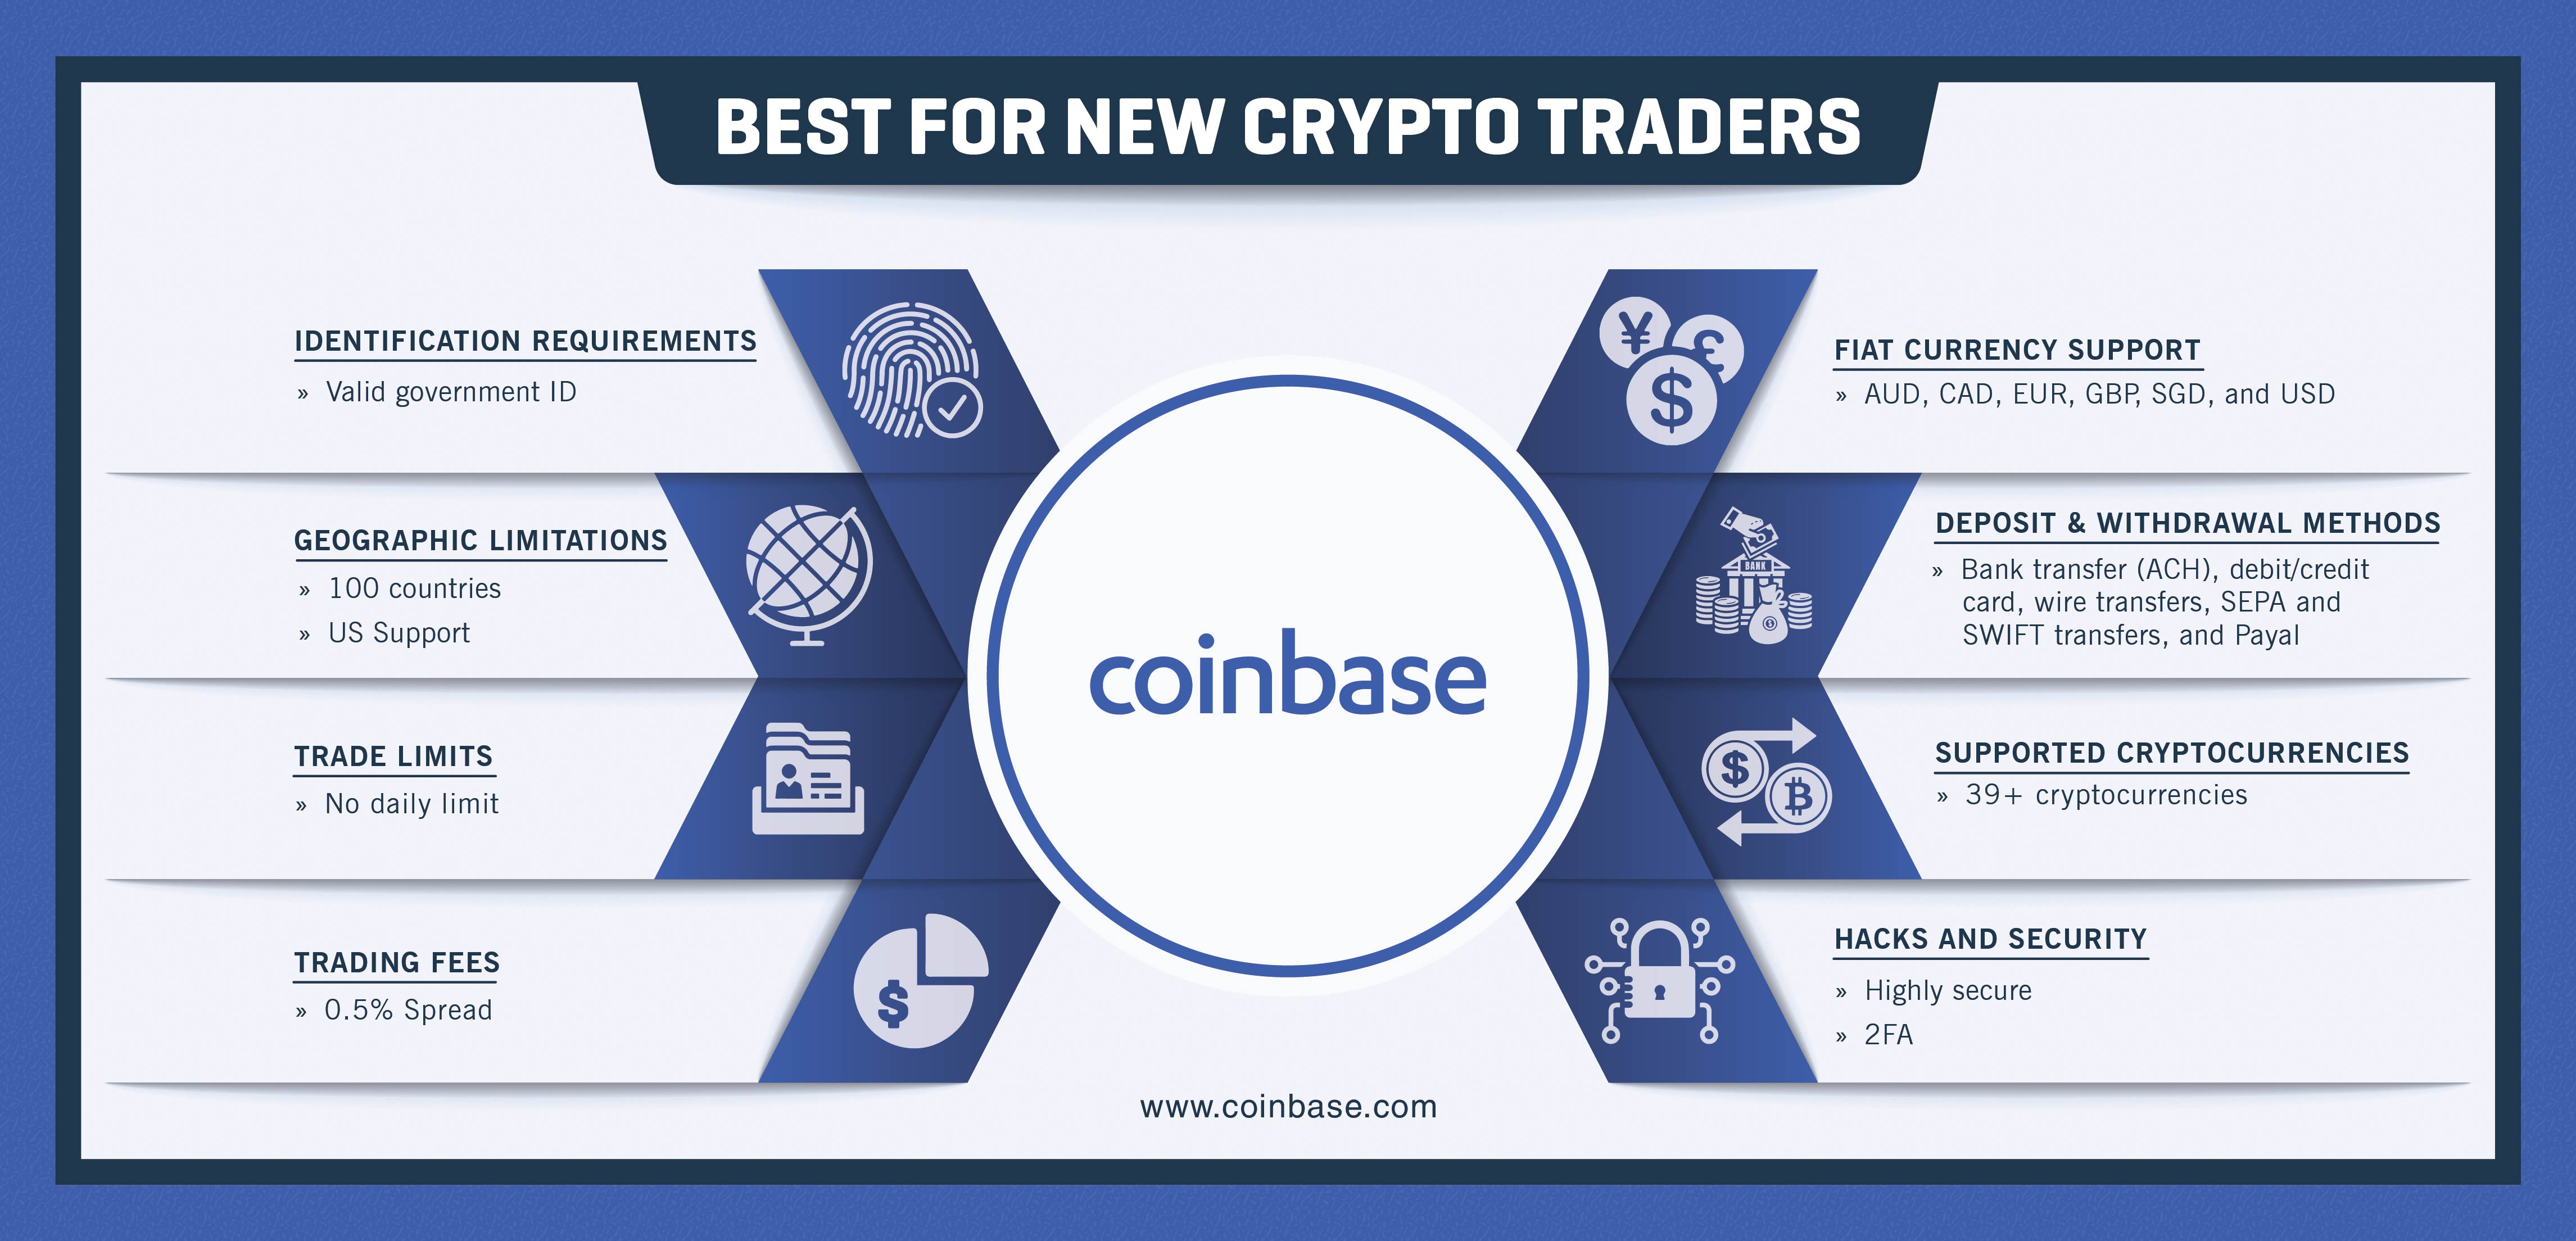 Coinbase best crypto exchange features